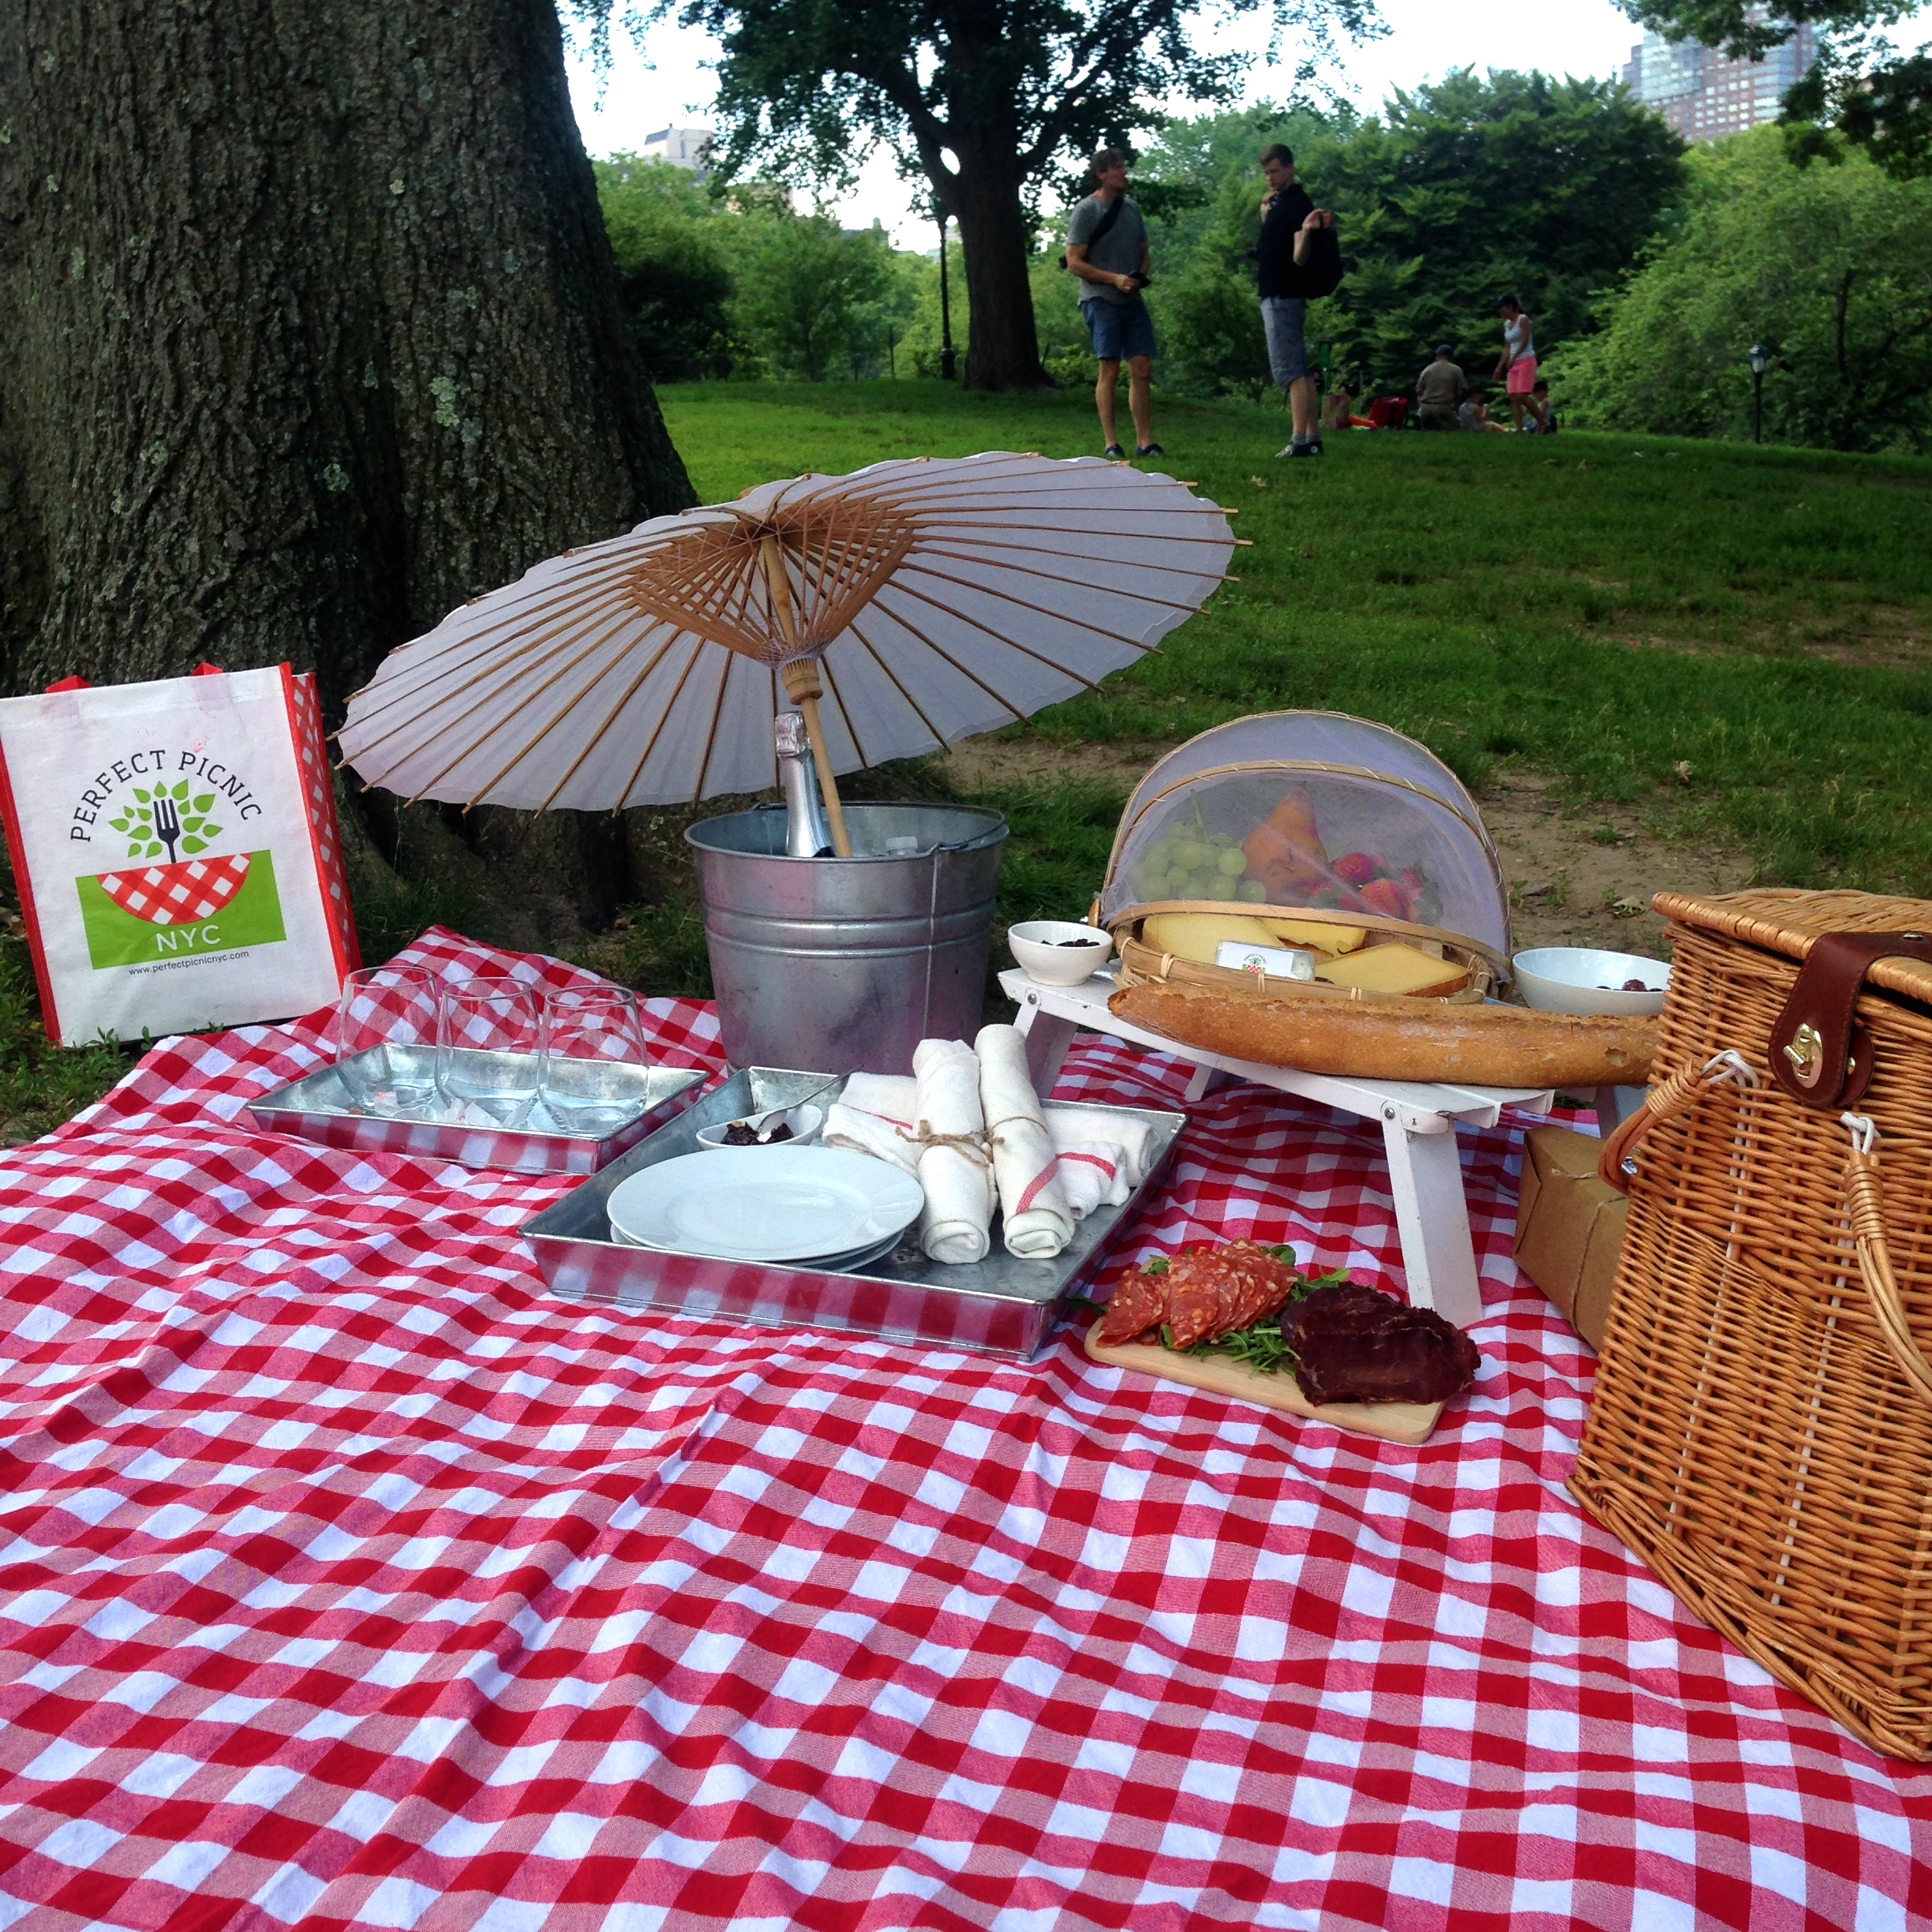 Picnic like a god in central park this summer mary in for Picnic food ideas for large groups